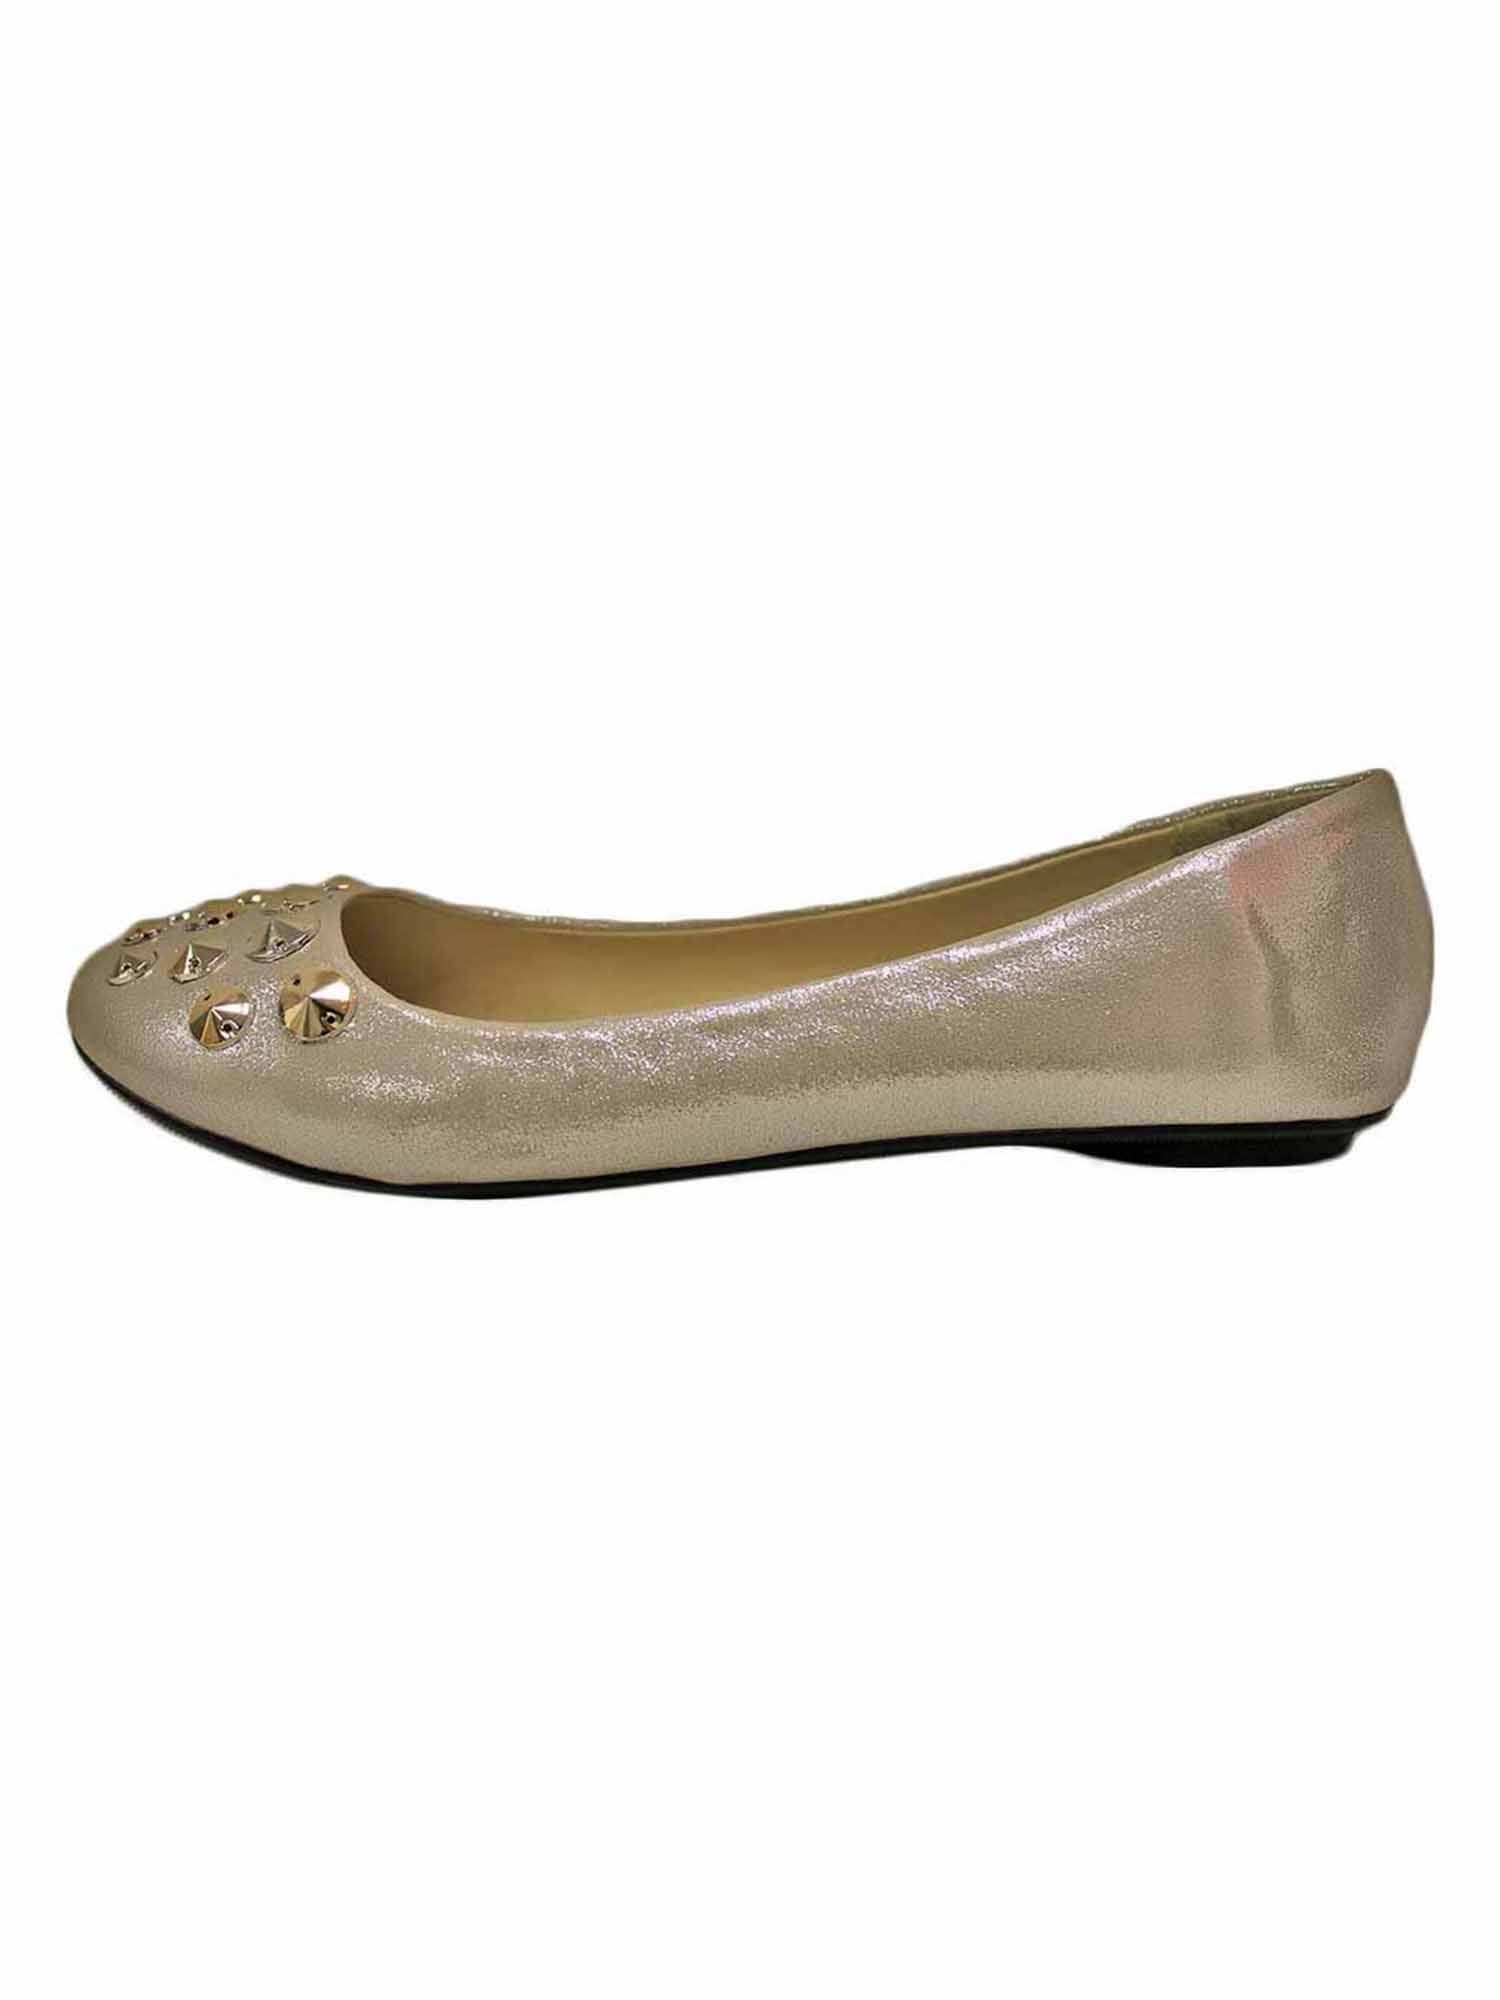 Suede Style Ballet Flats With Silver Studded Toe